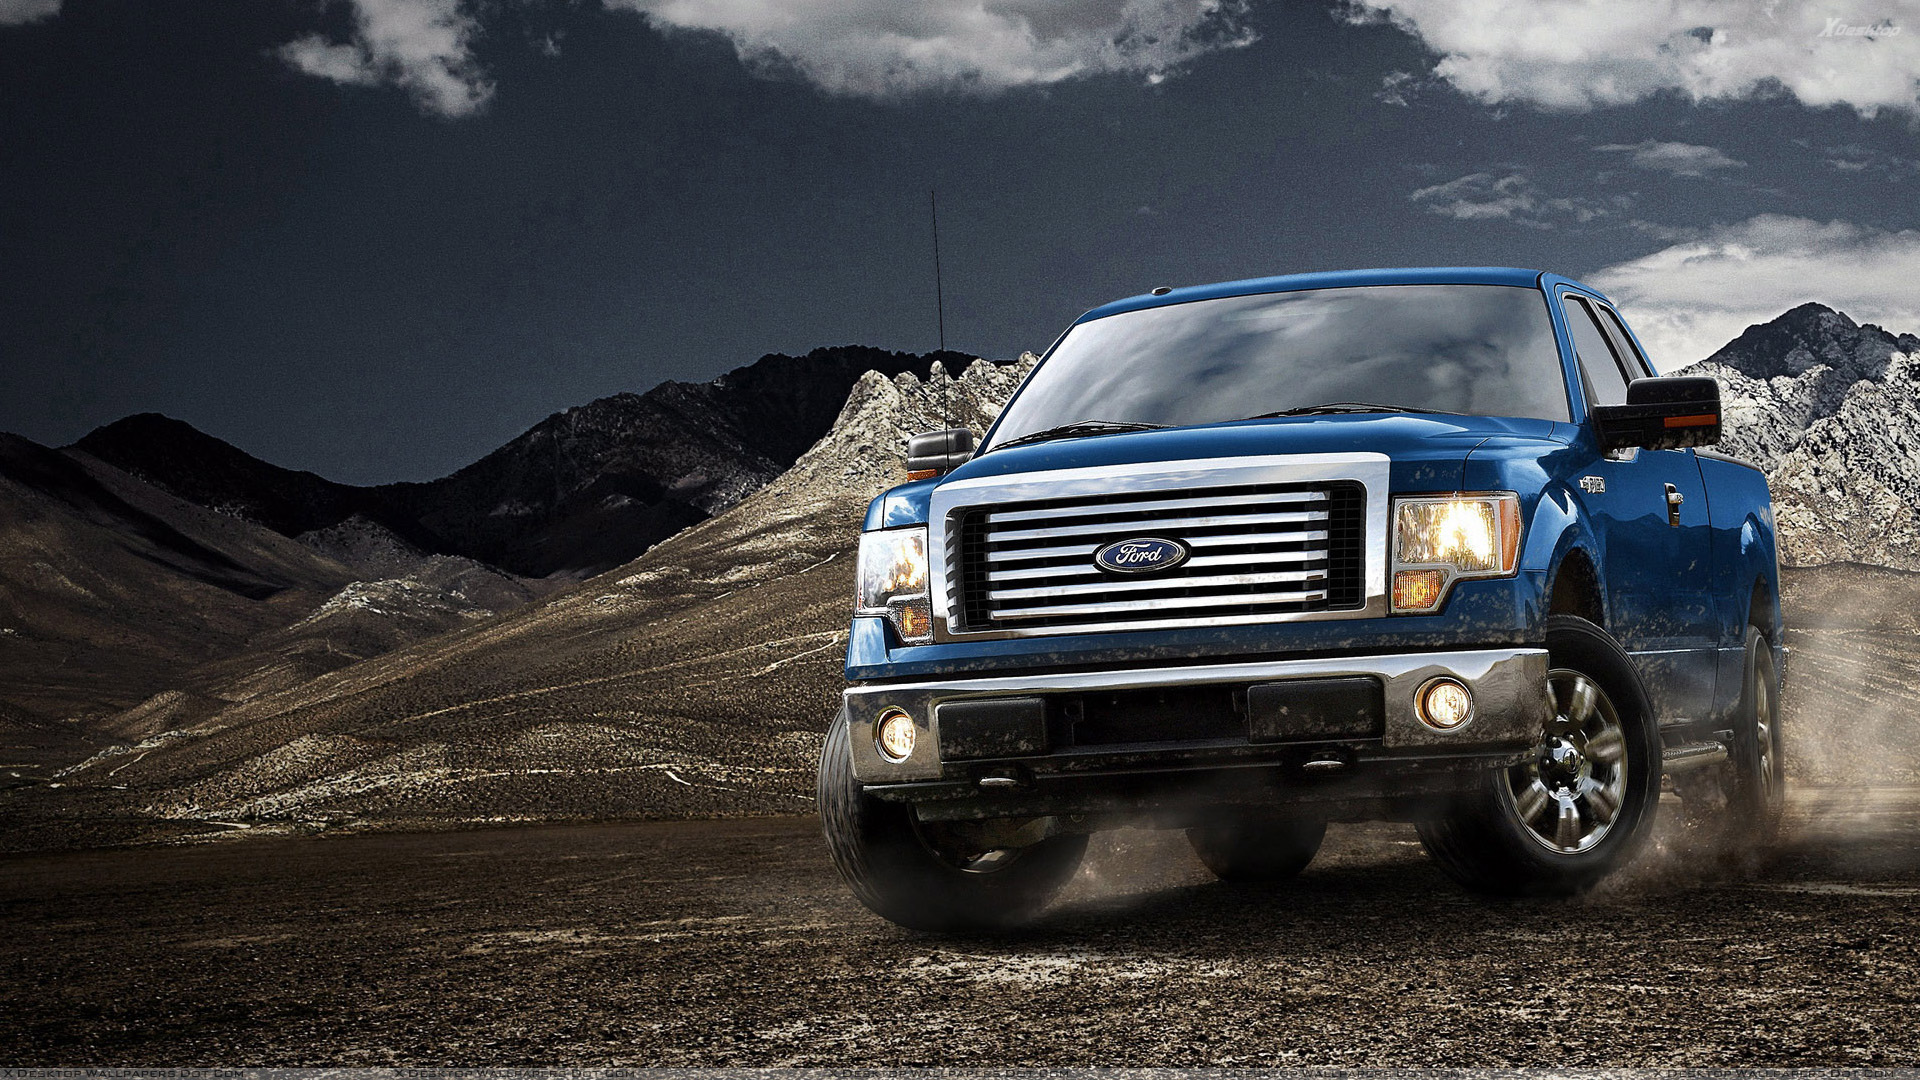 2012 Ford F 150 in Blue Near Mountains Wallpaper 1920x1080